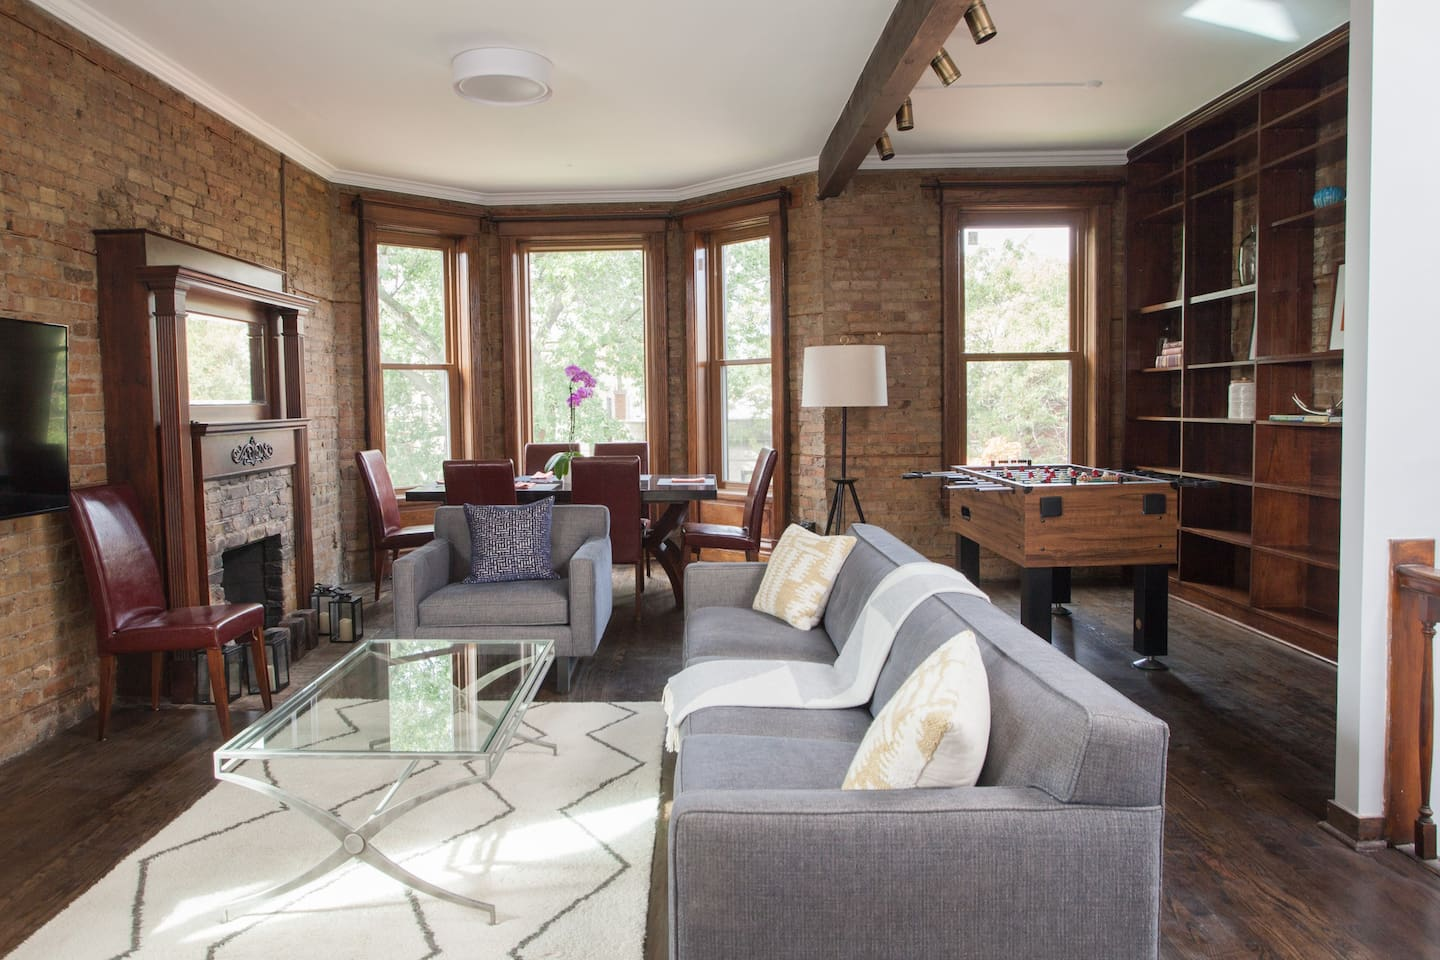 A home with soul in the heart of Wrigleyville.  Vintage millwork and exposed brick coupled with all the modern amenities you could want.